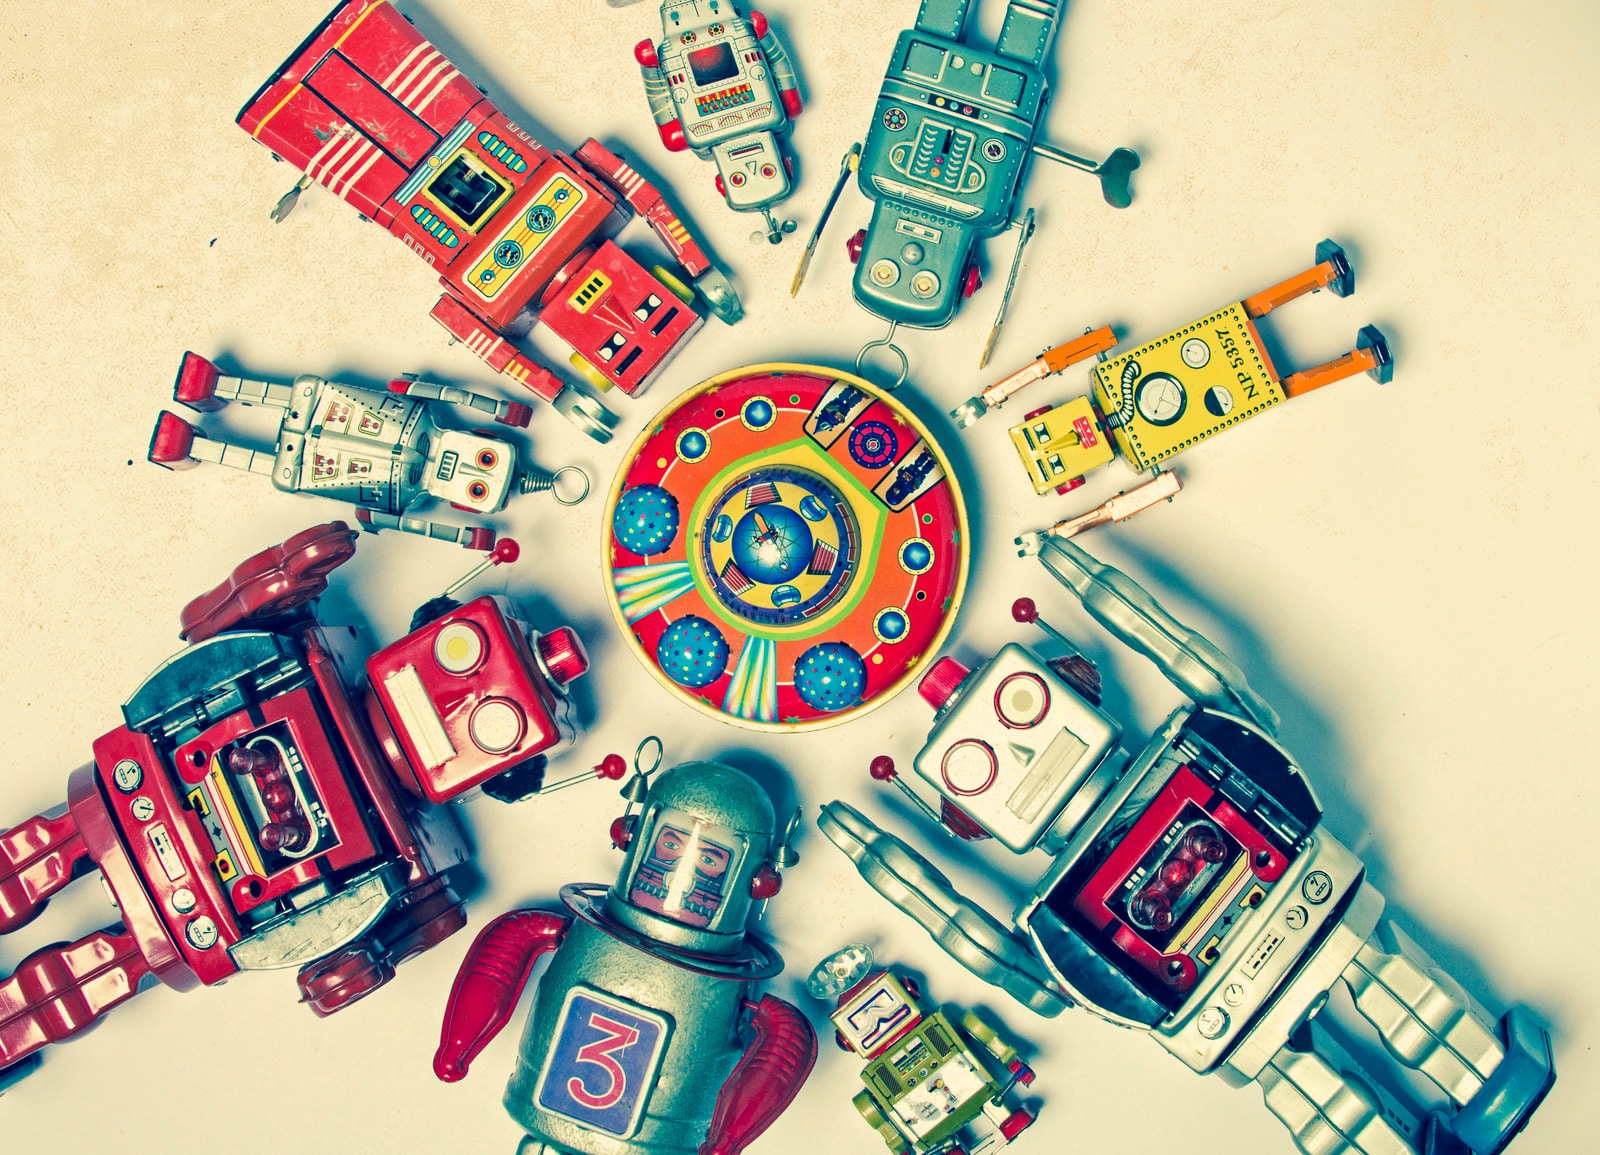 The History of Robotics: From an Idea to Drones and Beyond